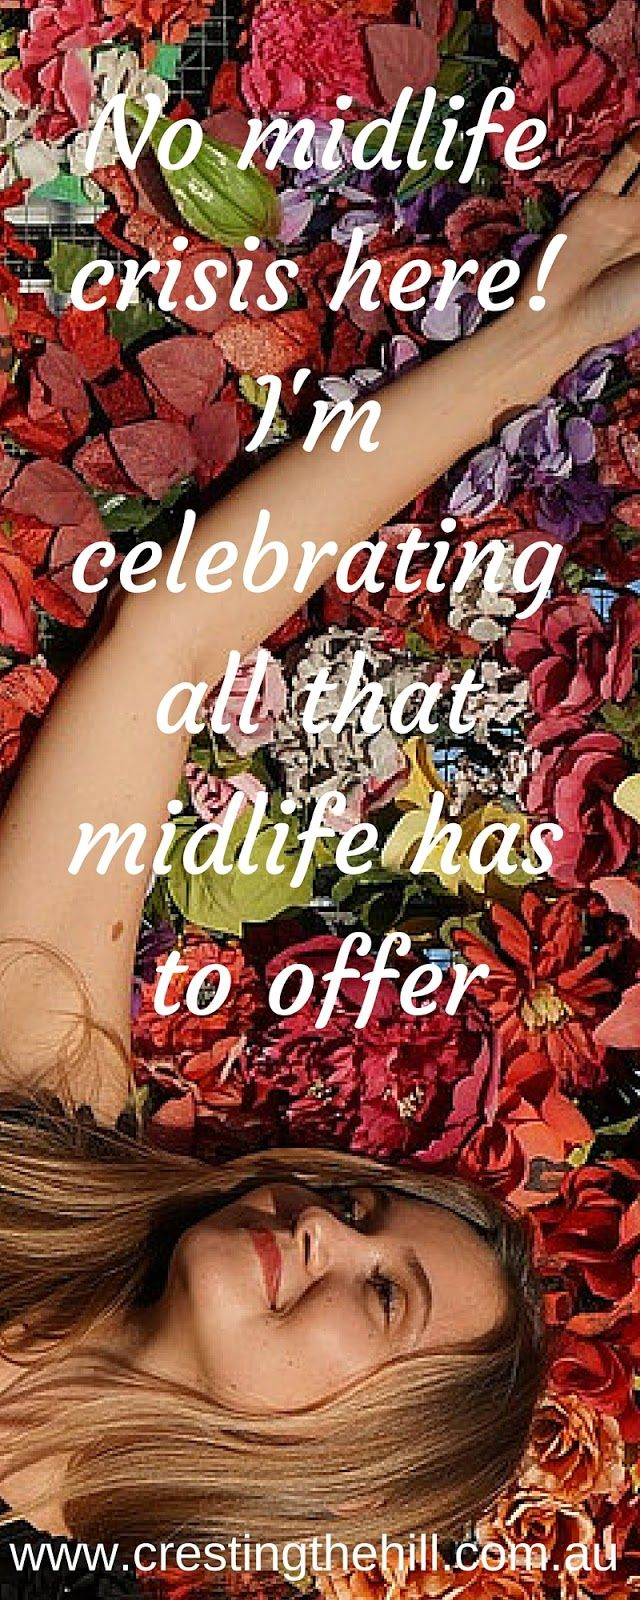 """You can look forward to ALL stages of life!  And Leanne at Cresting the Hill will show you how... vibrant and fearlessly!  """"no midlife crisis for me - I'm celebrating all that midlife has to offer!"""""""